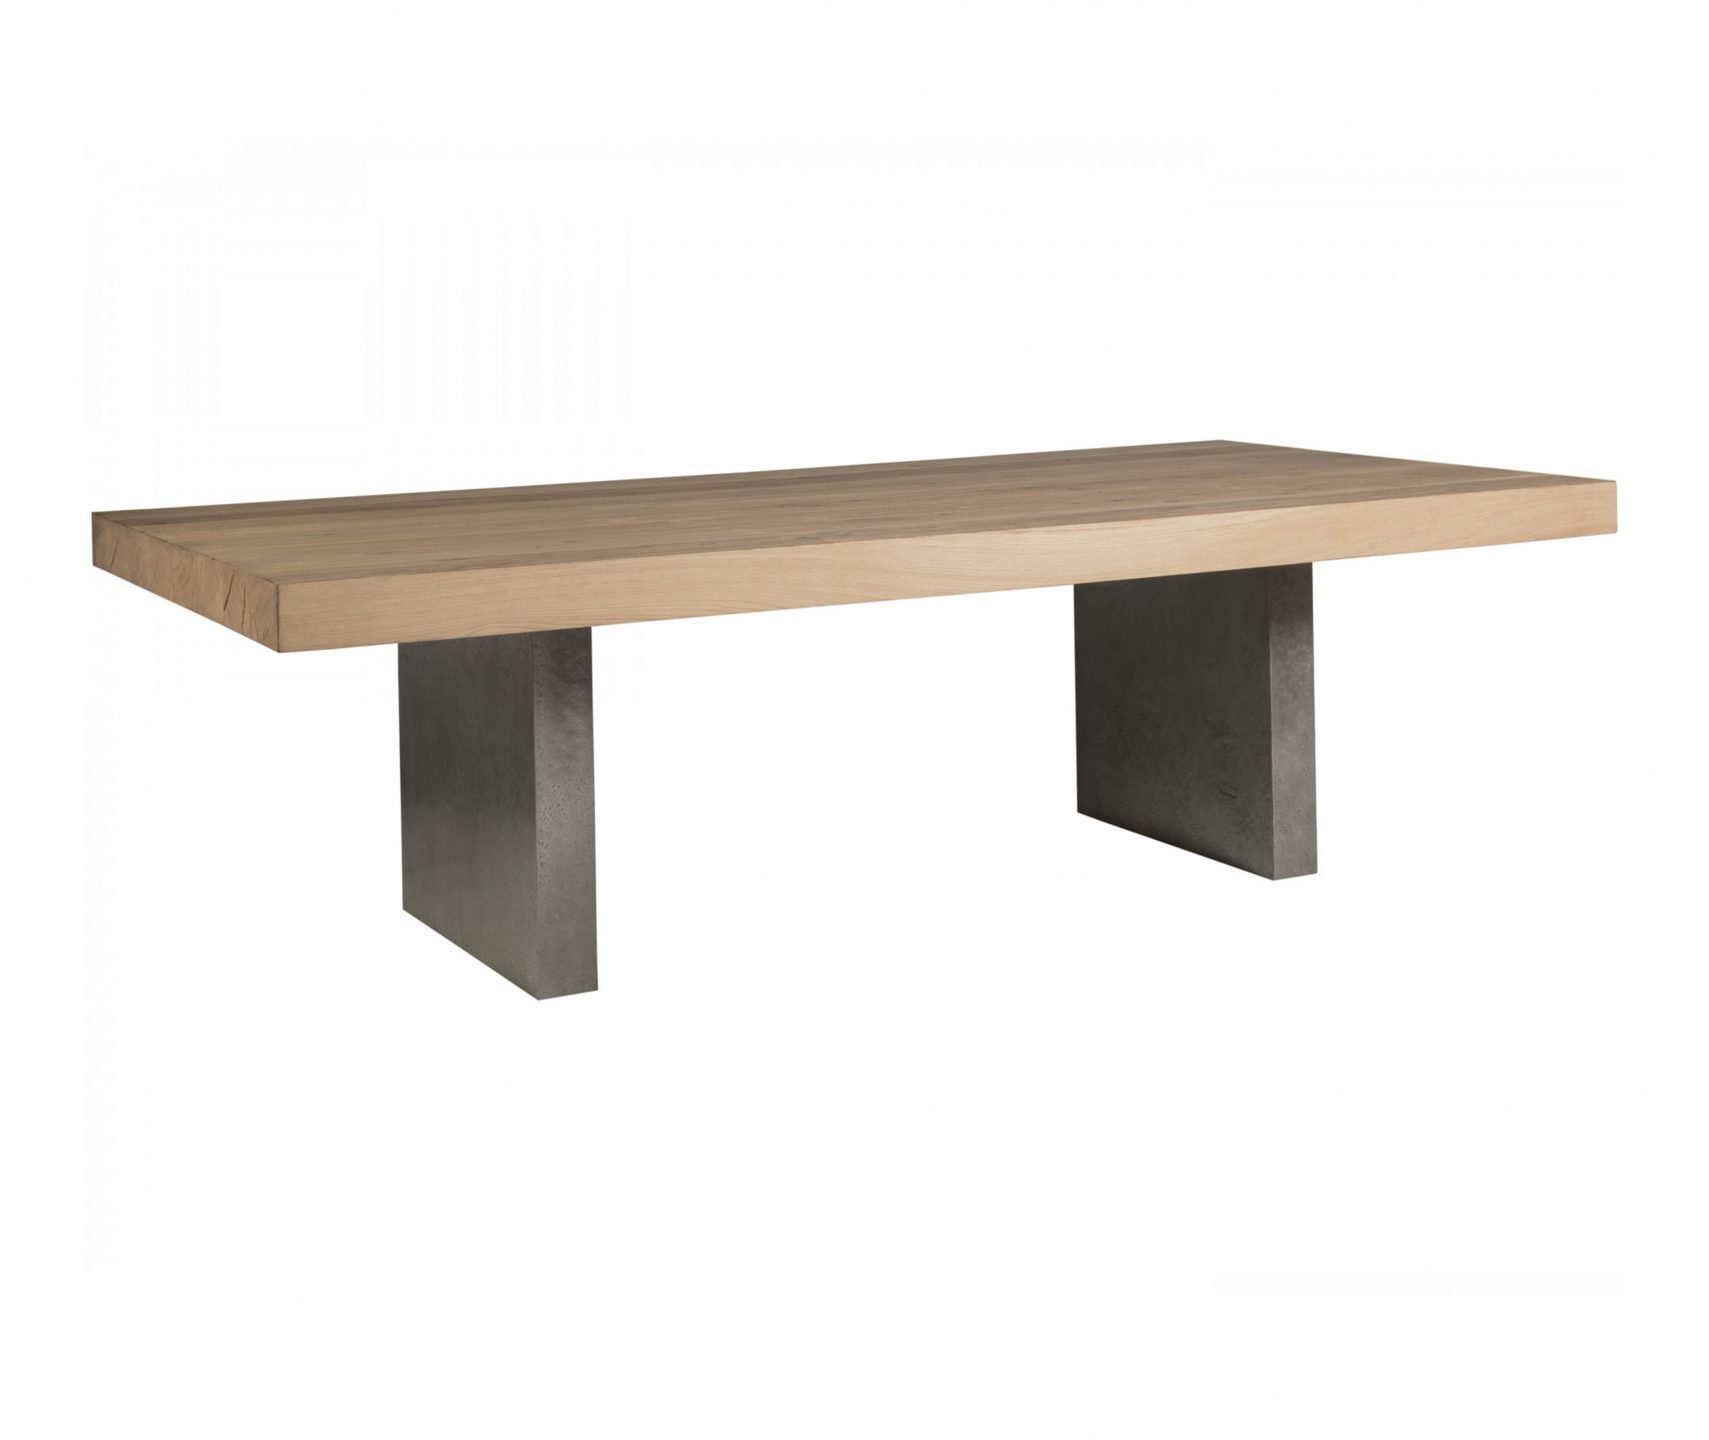 Lexington Home Brands_Verite Rectangle Dining Table 1_int_products